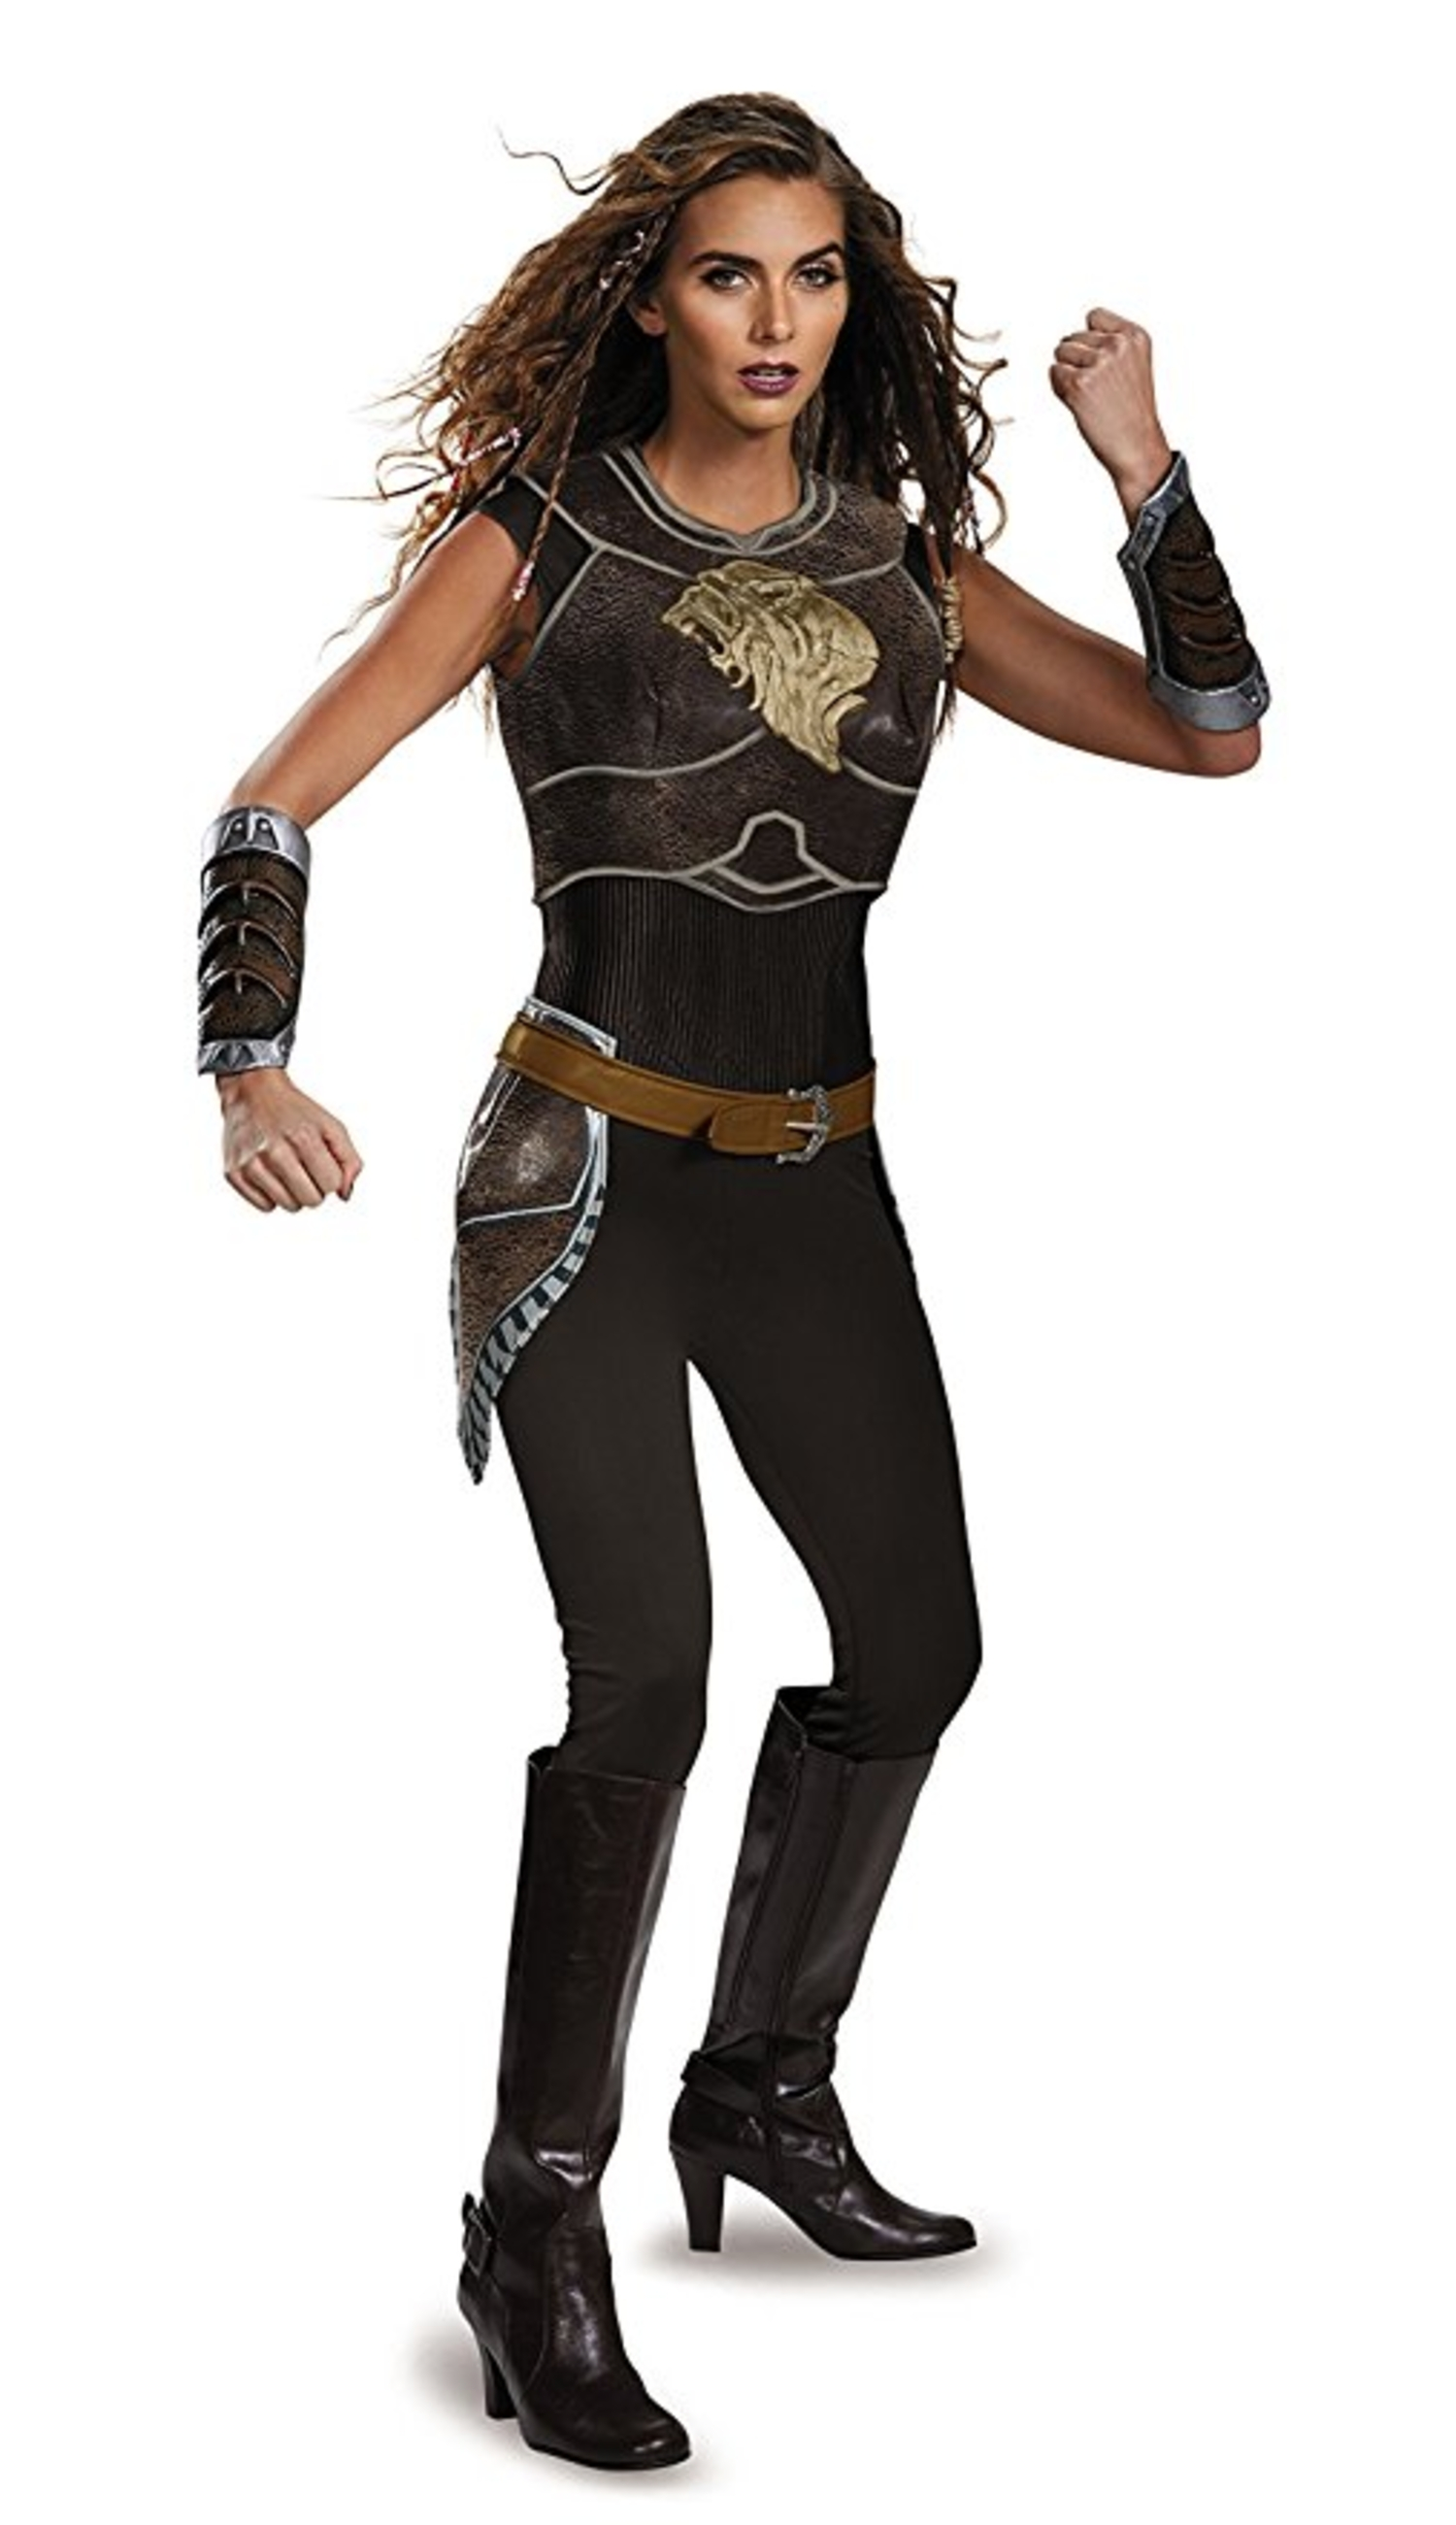 The World of Warcraft - Garona Halloween Costume.jpg